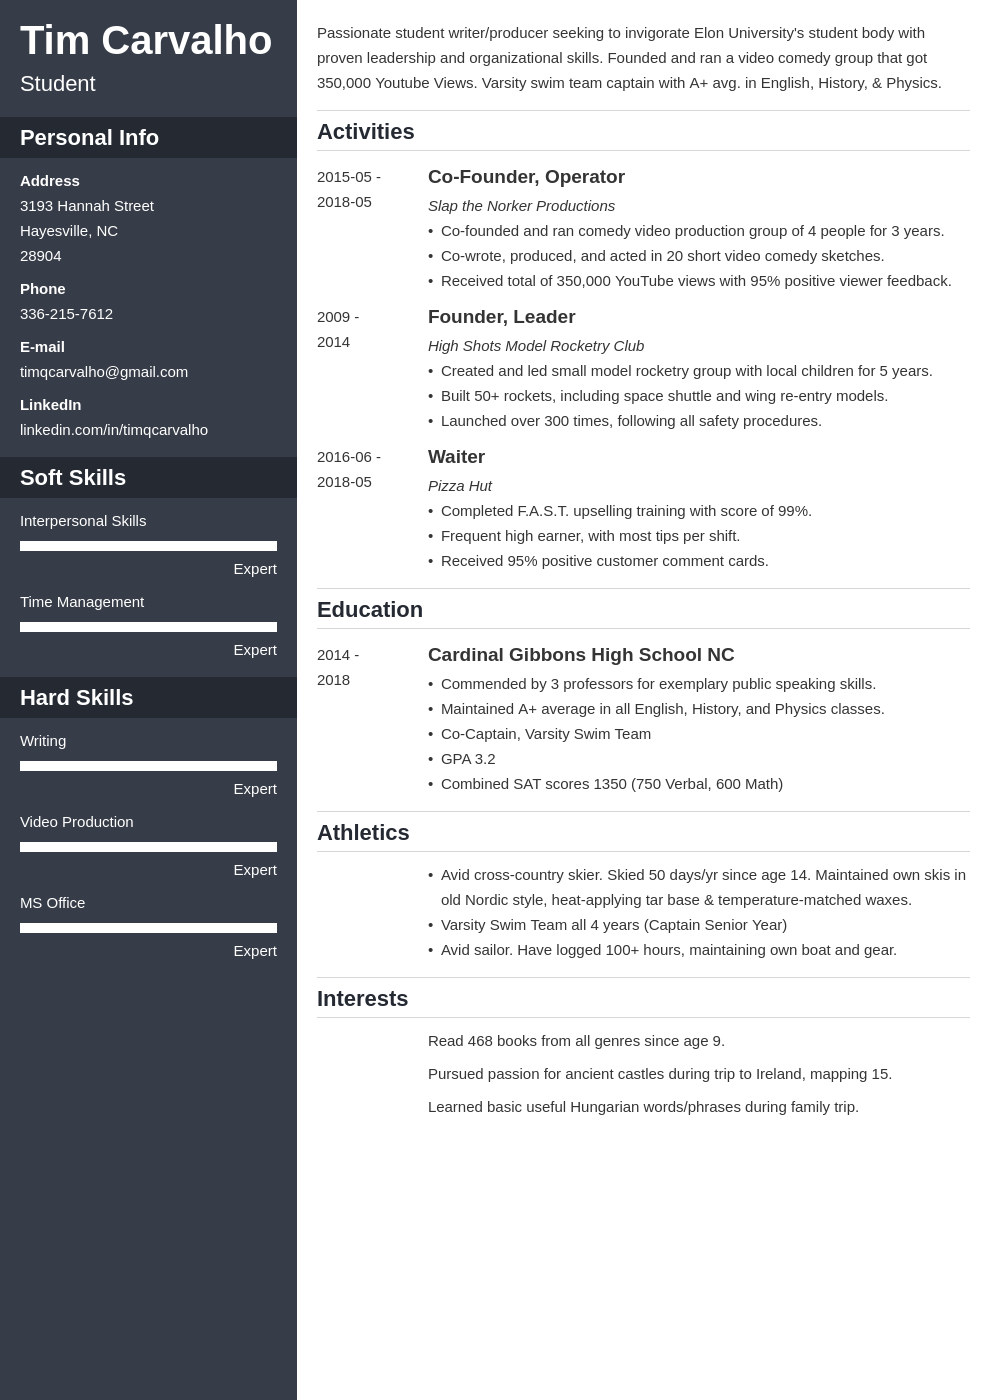 College Resume Template for High School Students (2020)